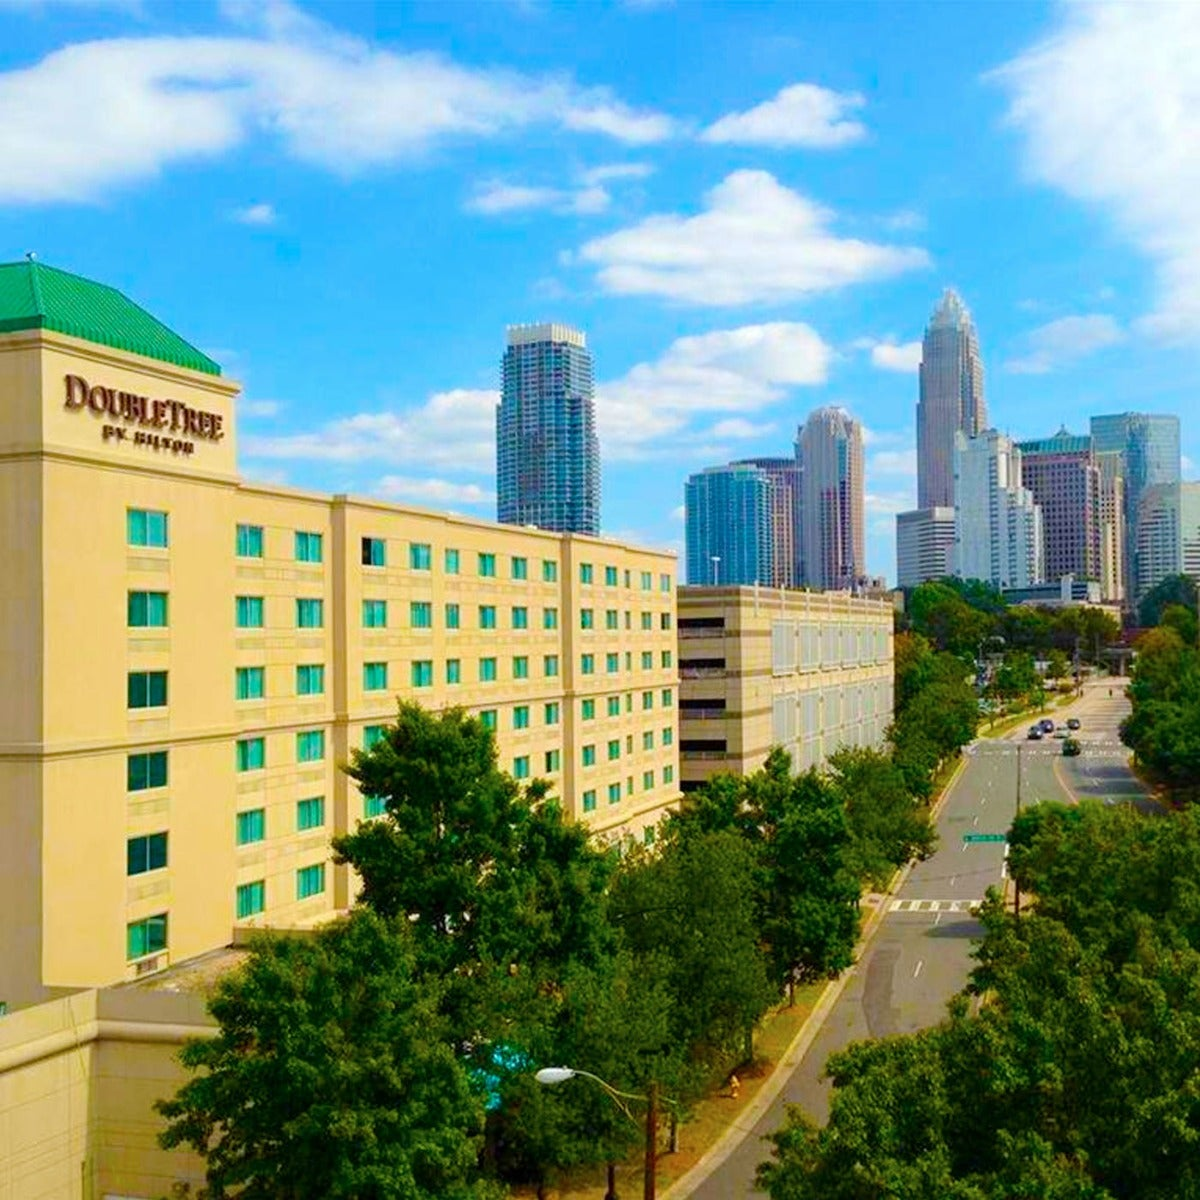 Double Tree by Hilton Charlotte - Charlotte, North Carolina